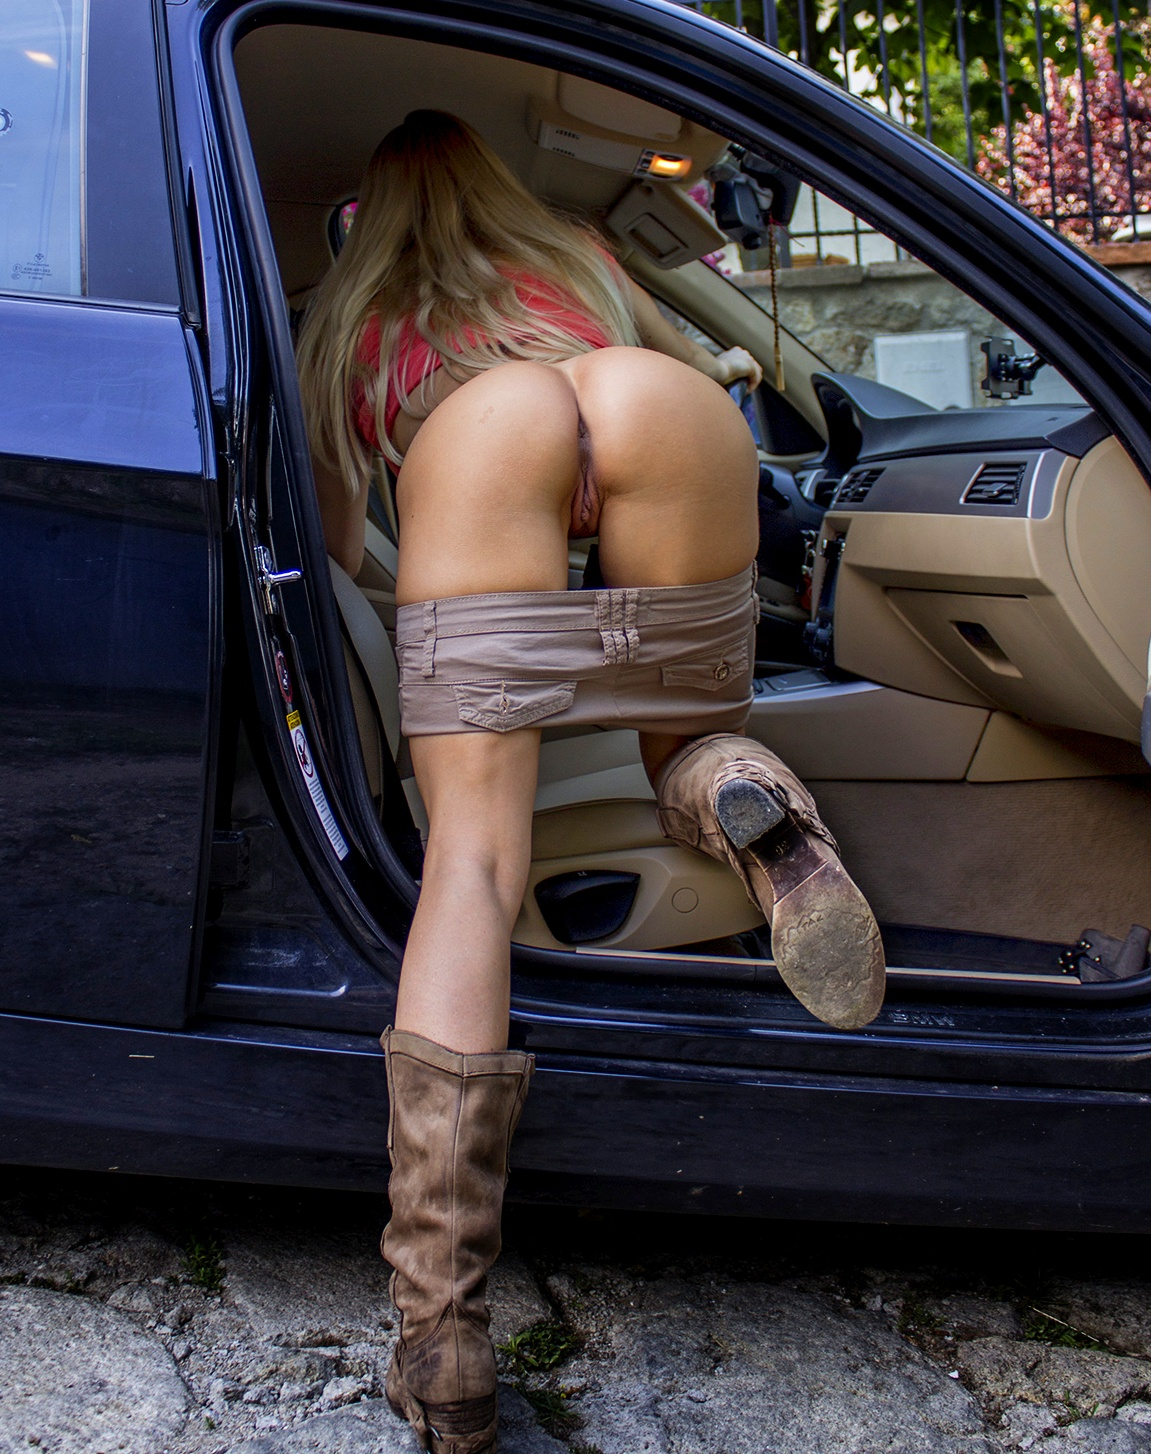 amatrice francaise prise en gang bang porn xhamster #asshole #blonde #bottomless #frombehind #highheels #inthecar #nebelfavs #nopanties #onallfours #psfb #rearview #sandals #smoothpussy #sweetass